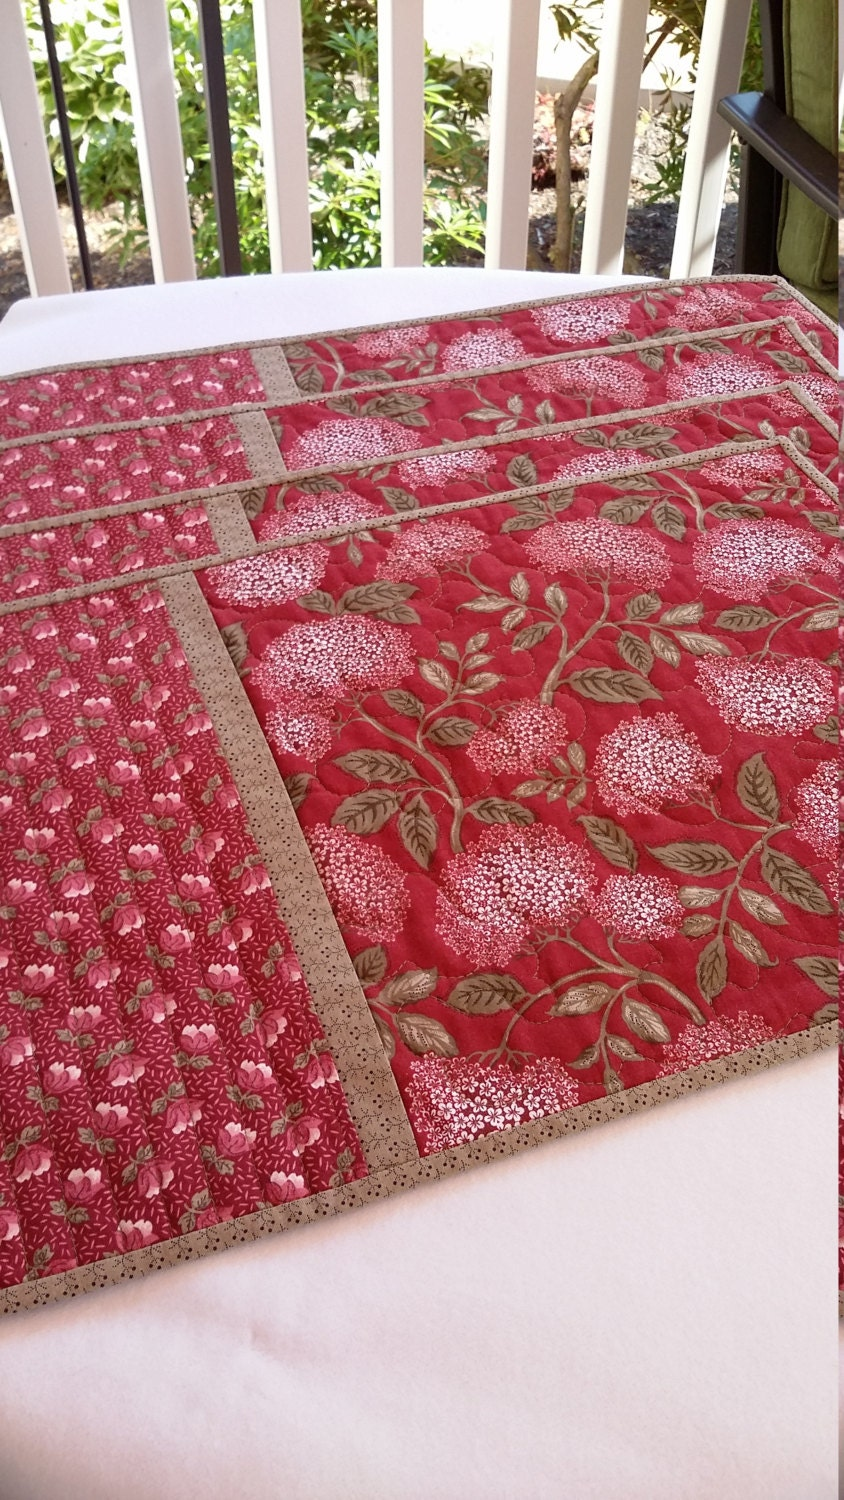 Handmade Quilted Floral Placemats Set Of 4 Red And Green